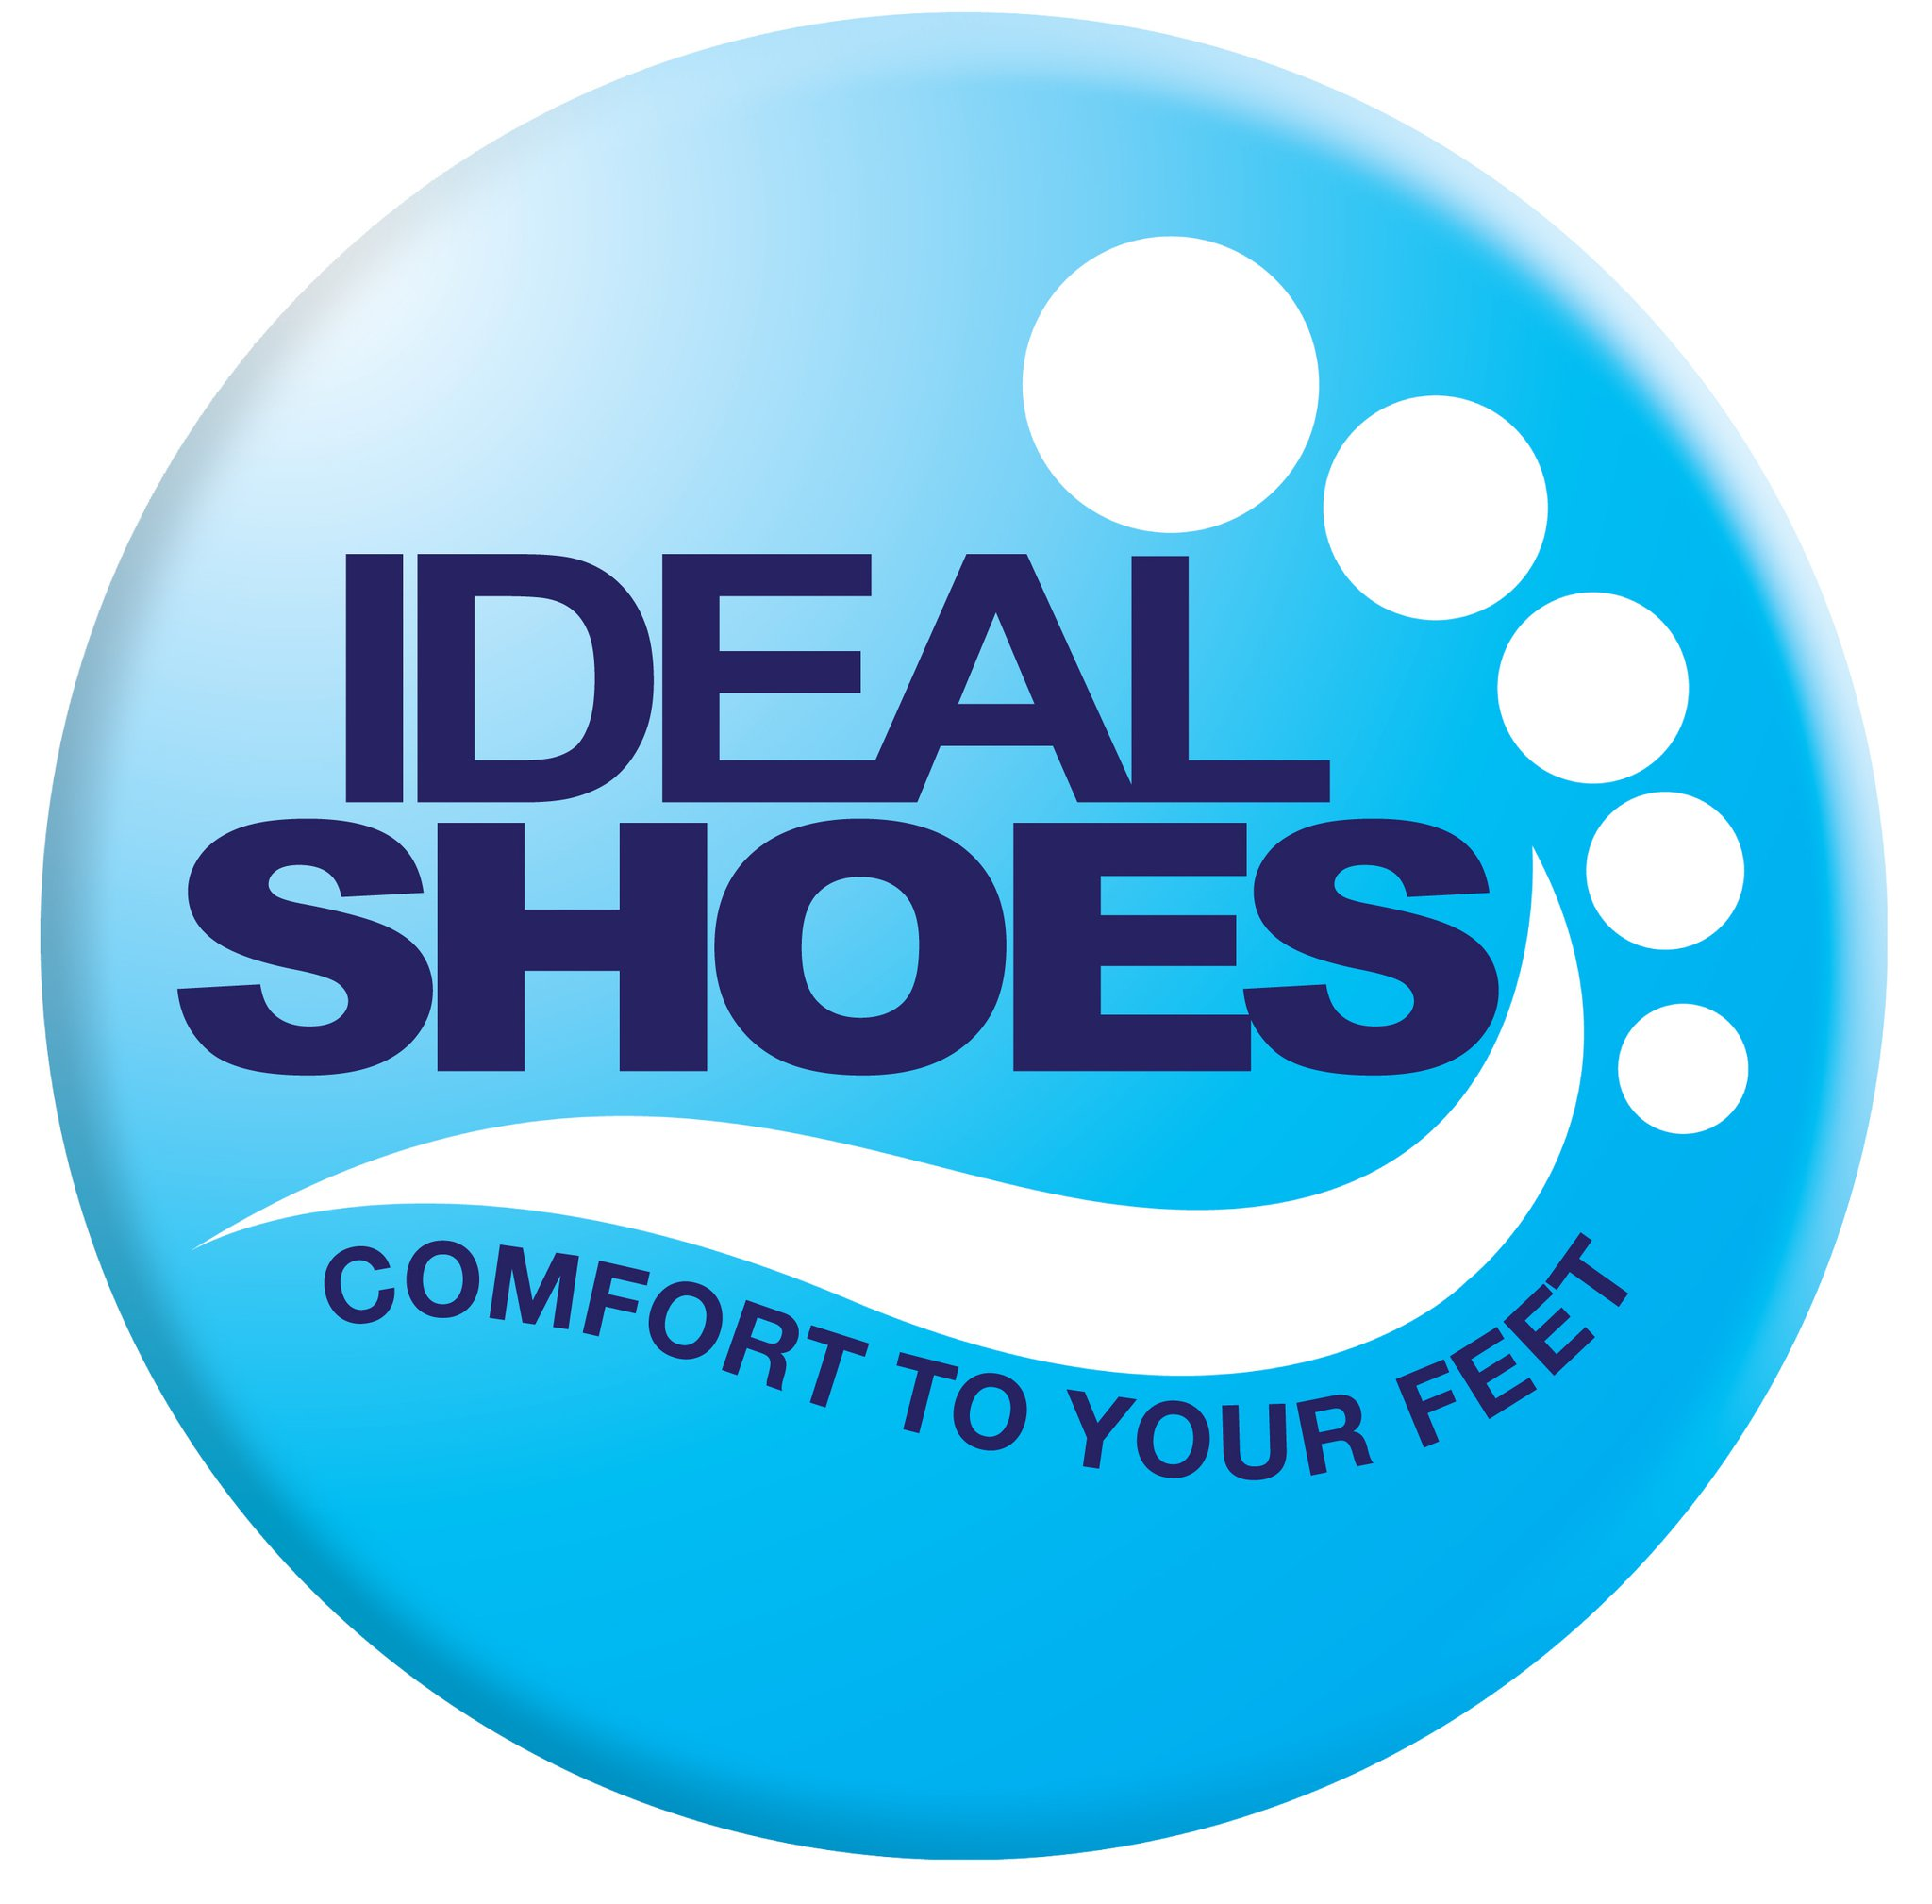 Ideal Shoes Medical Supplies - Medical - Alamo Heights ...